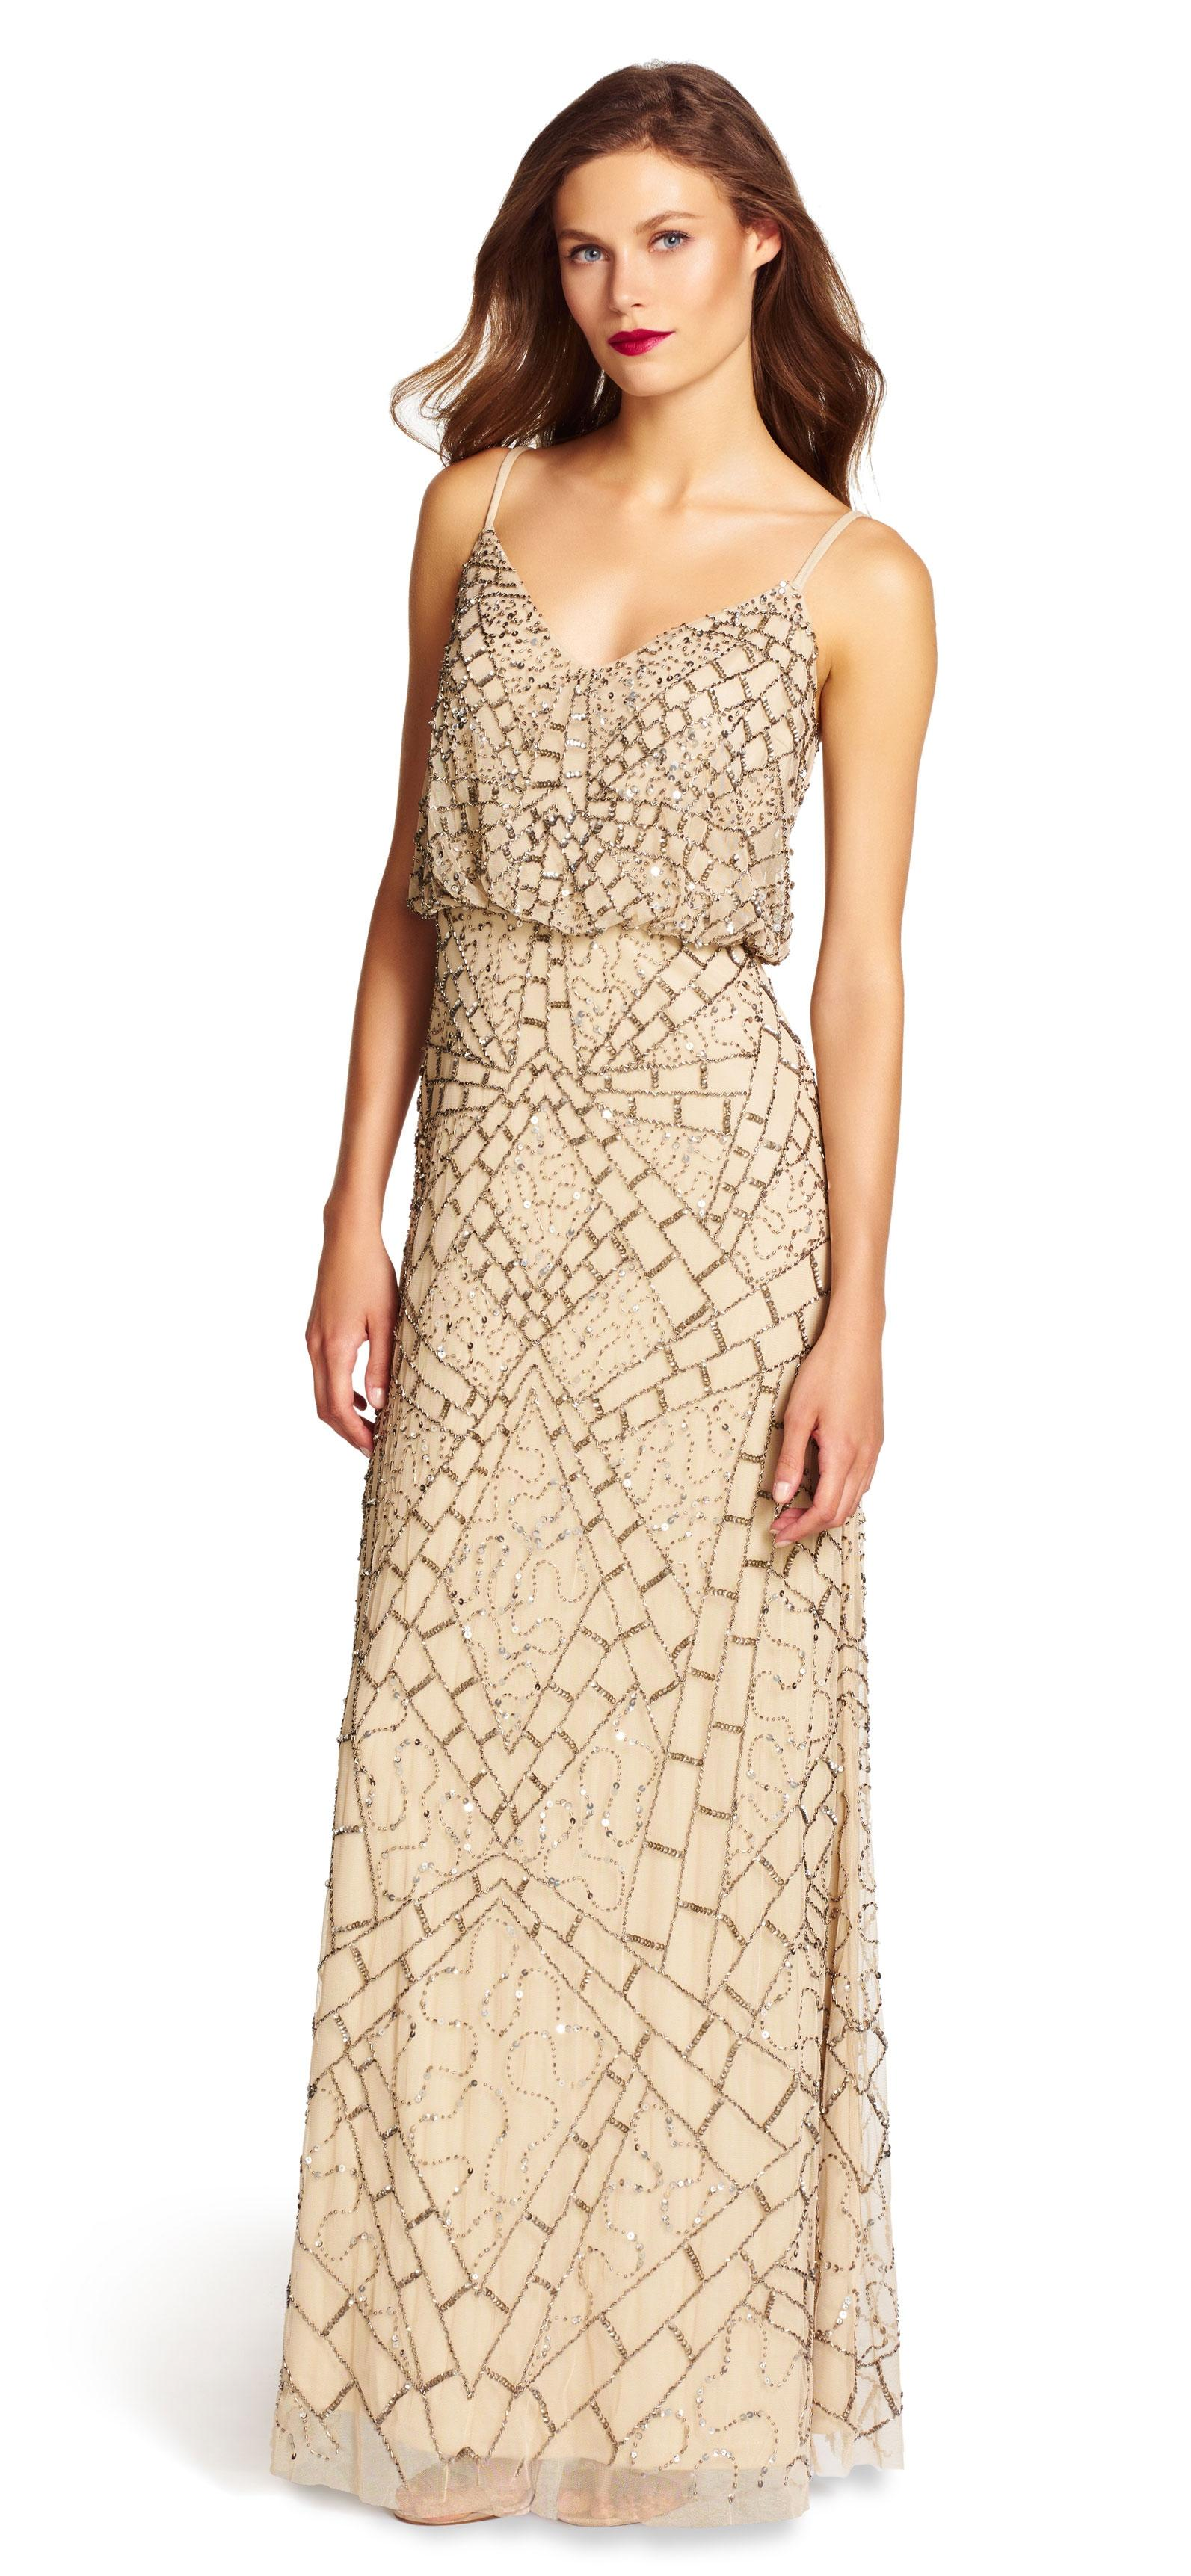 Adrianna Papell Nude Sleeveless Beaded Blouson Gown Dress 25 Off